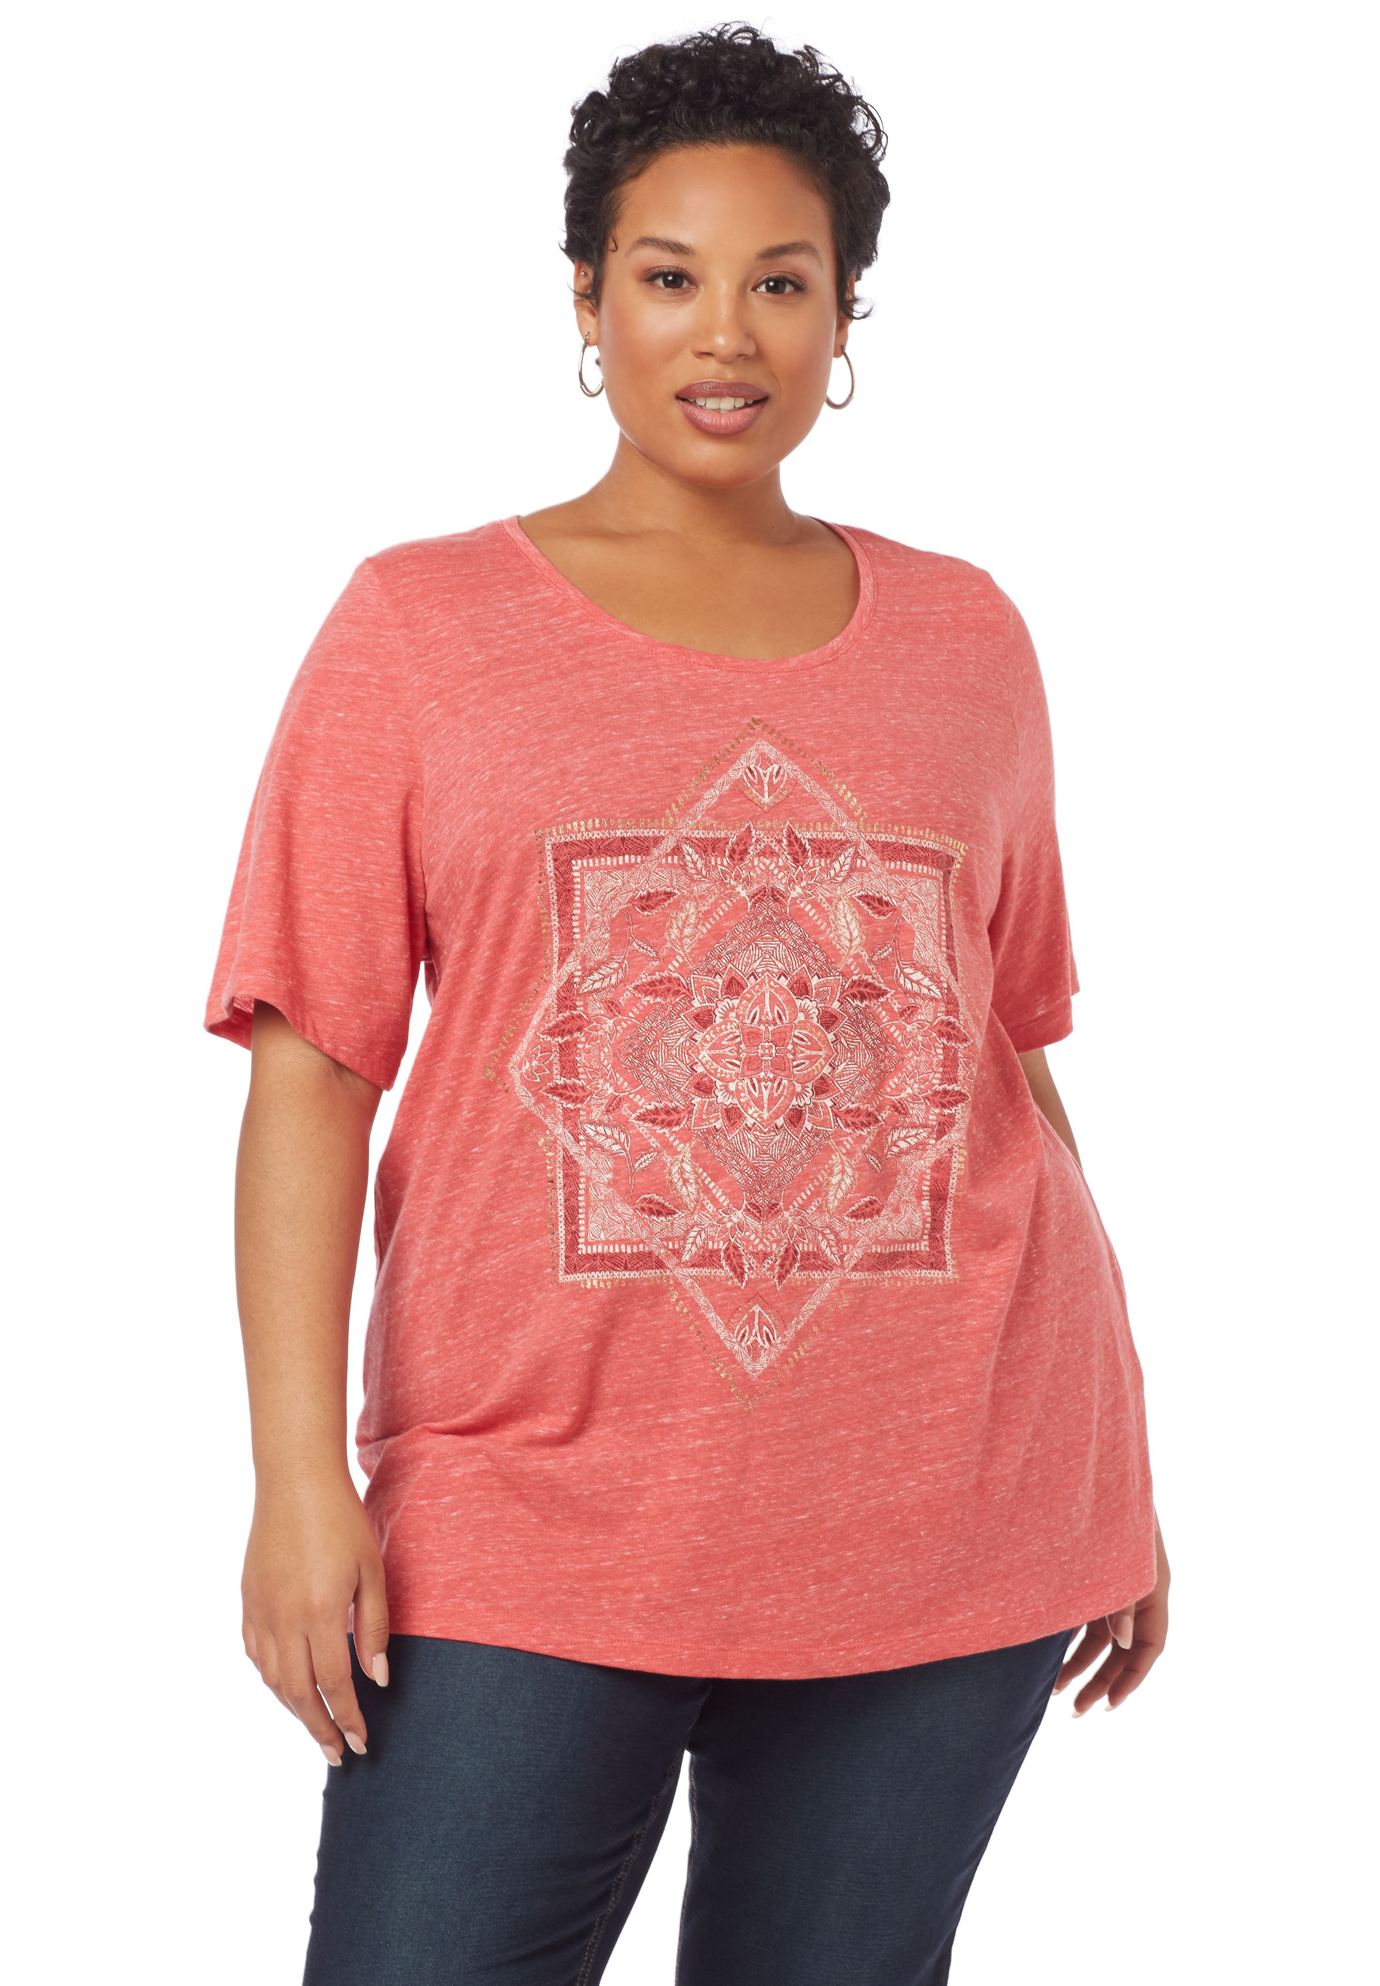 Stay Centered Short-Sleeve Top,